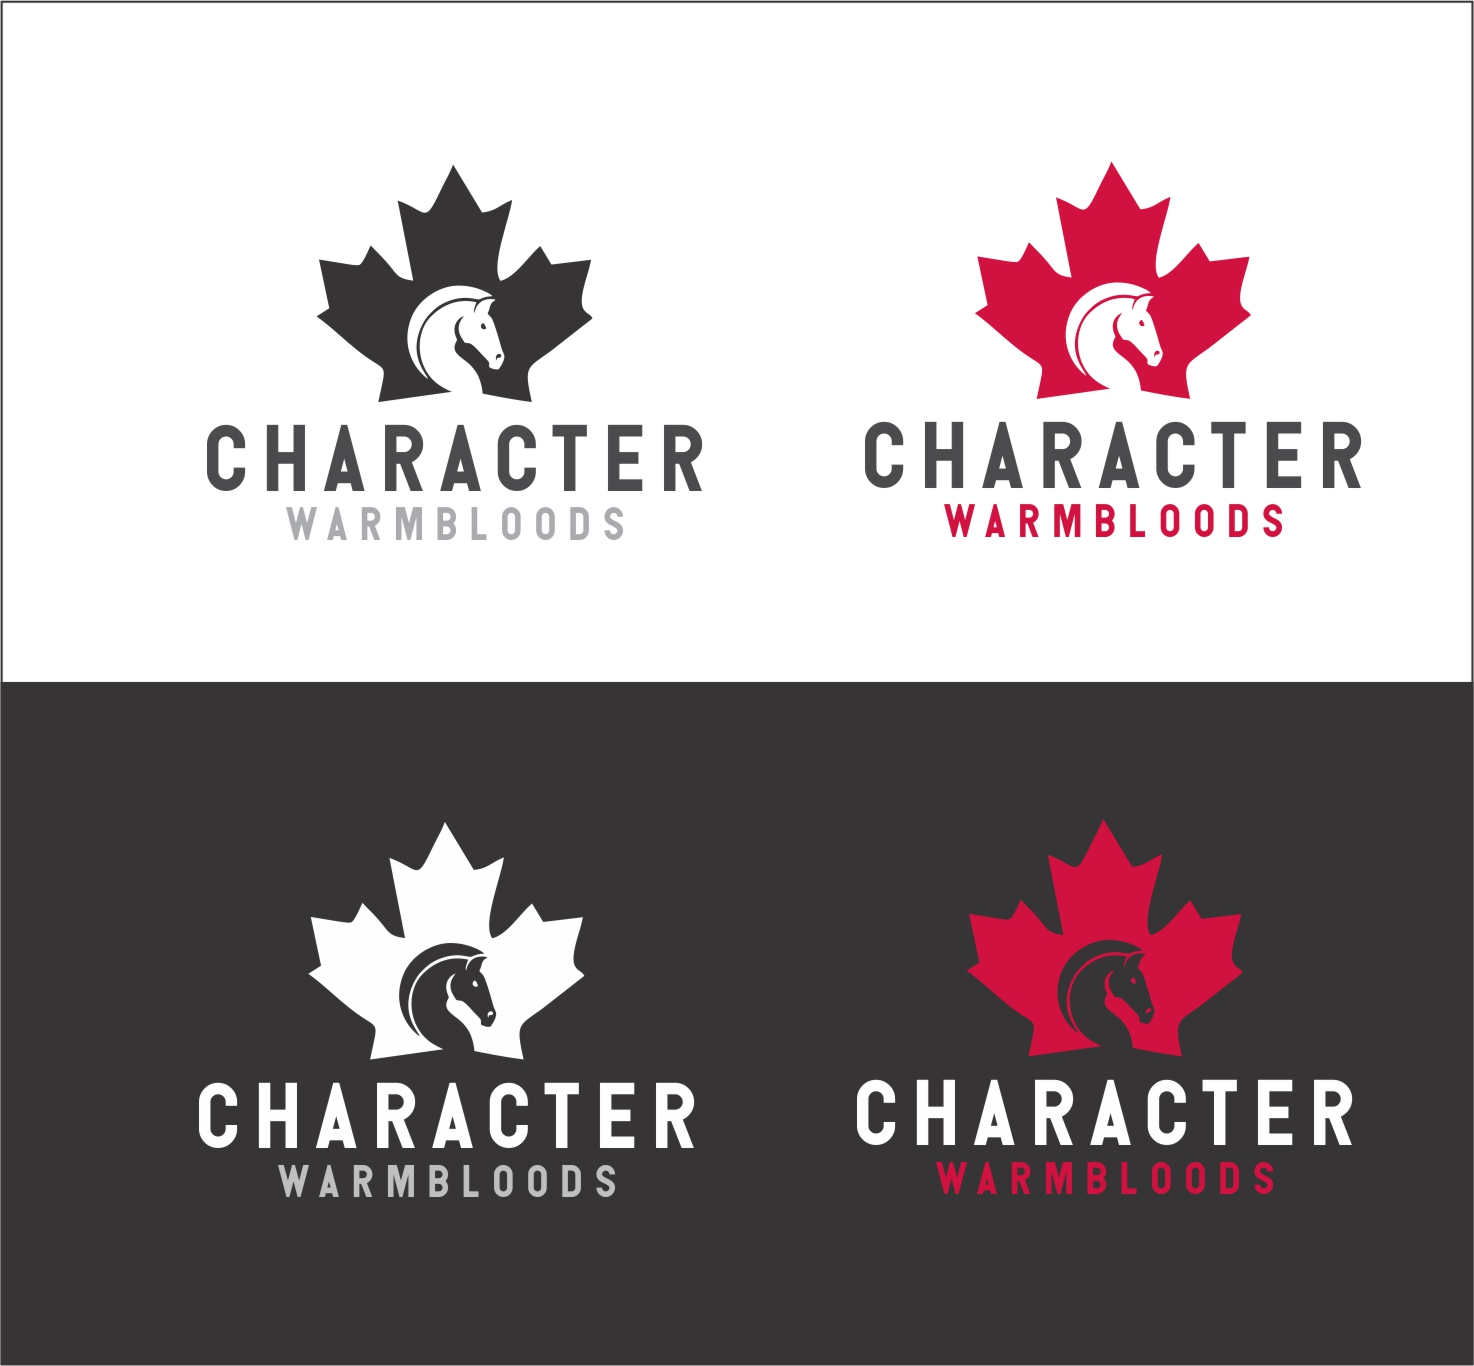 Character Design Job Canada : Serious modern logo design for character warmbloods by